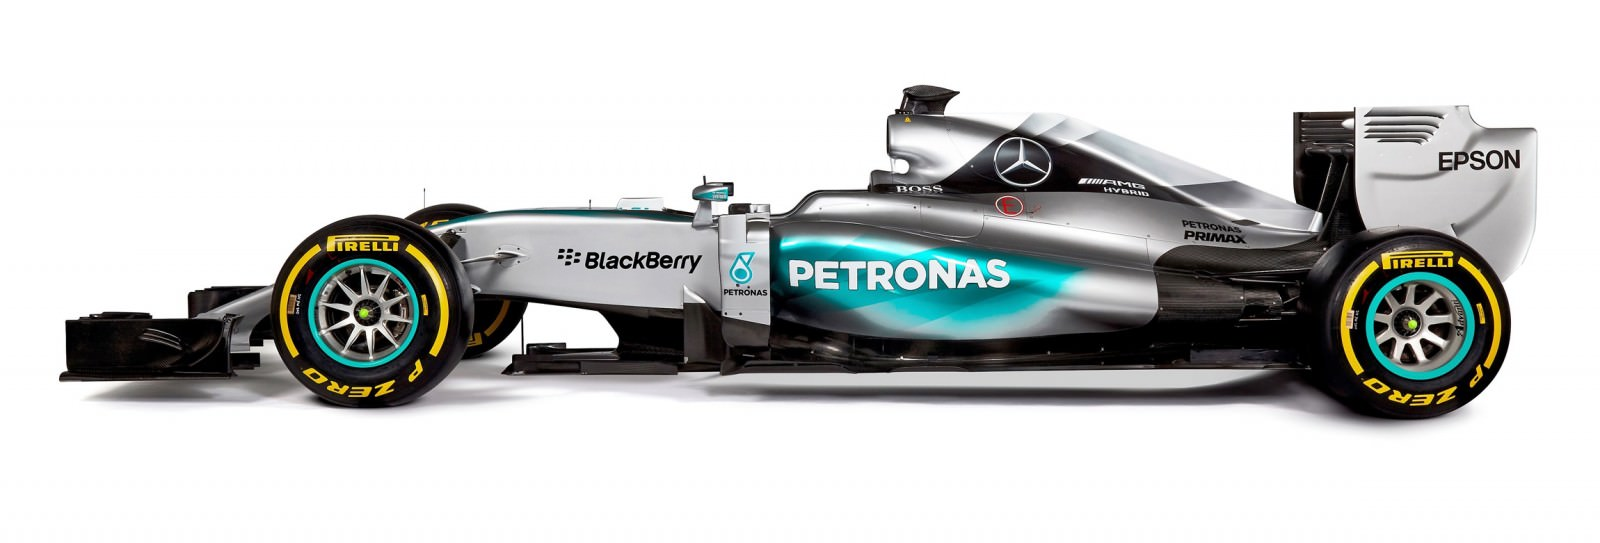 2015 F1 Cars Comparo - Infiniti RB11 vs McLaren-Honda MP4-30 vs AMG W06 vs Ferrari SF15T 41